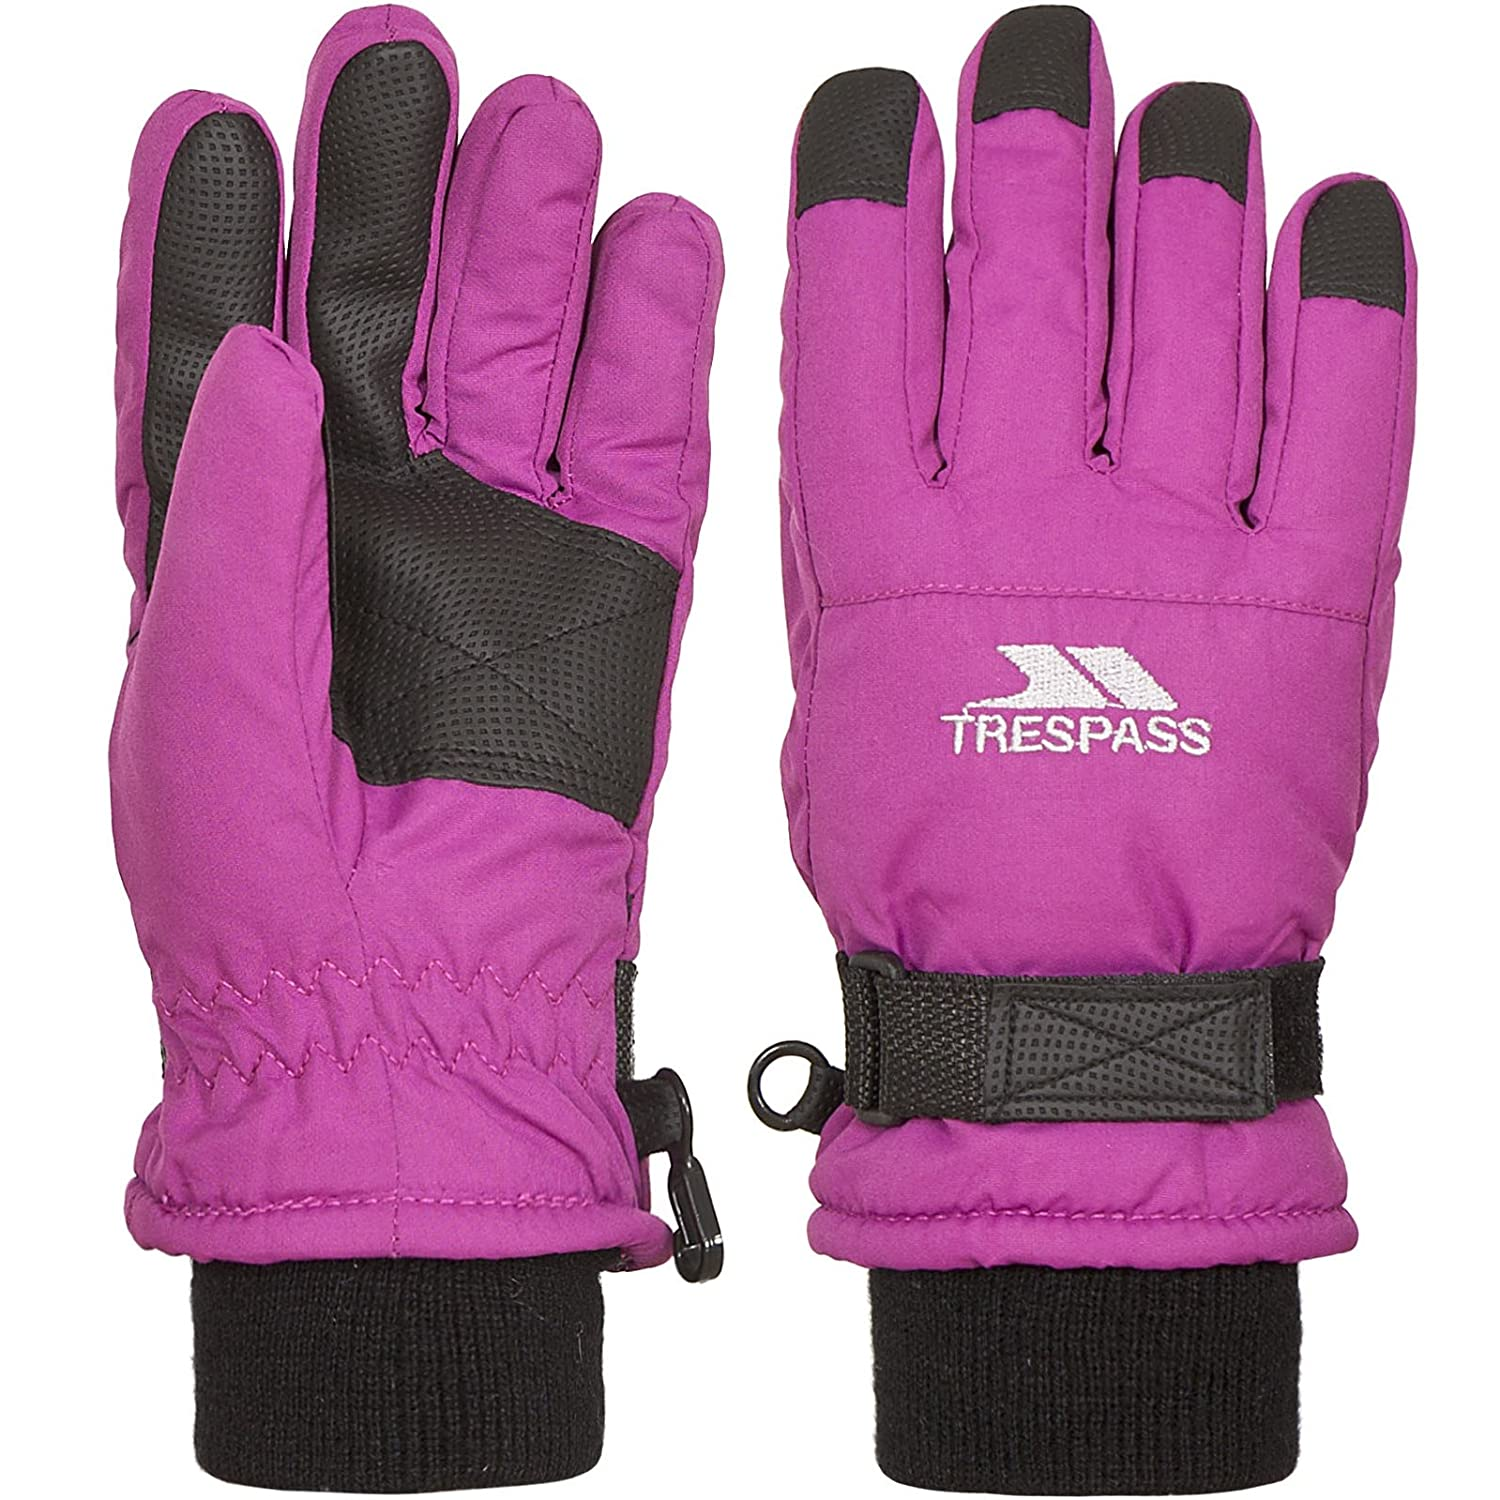 Trespass Childrens/Kids Ruri II Winter Ski Gloves (2-4 Years) (Black) UTTP3472_2